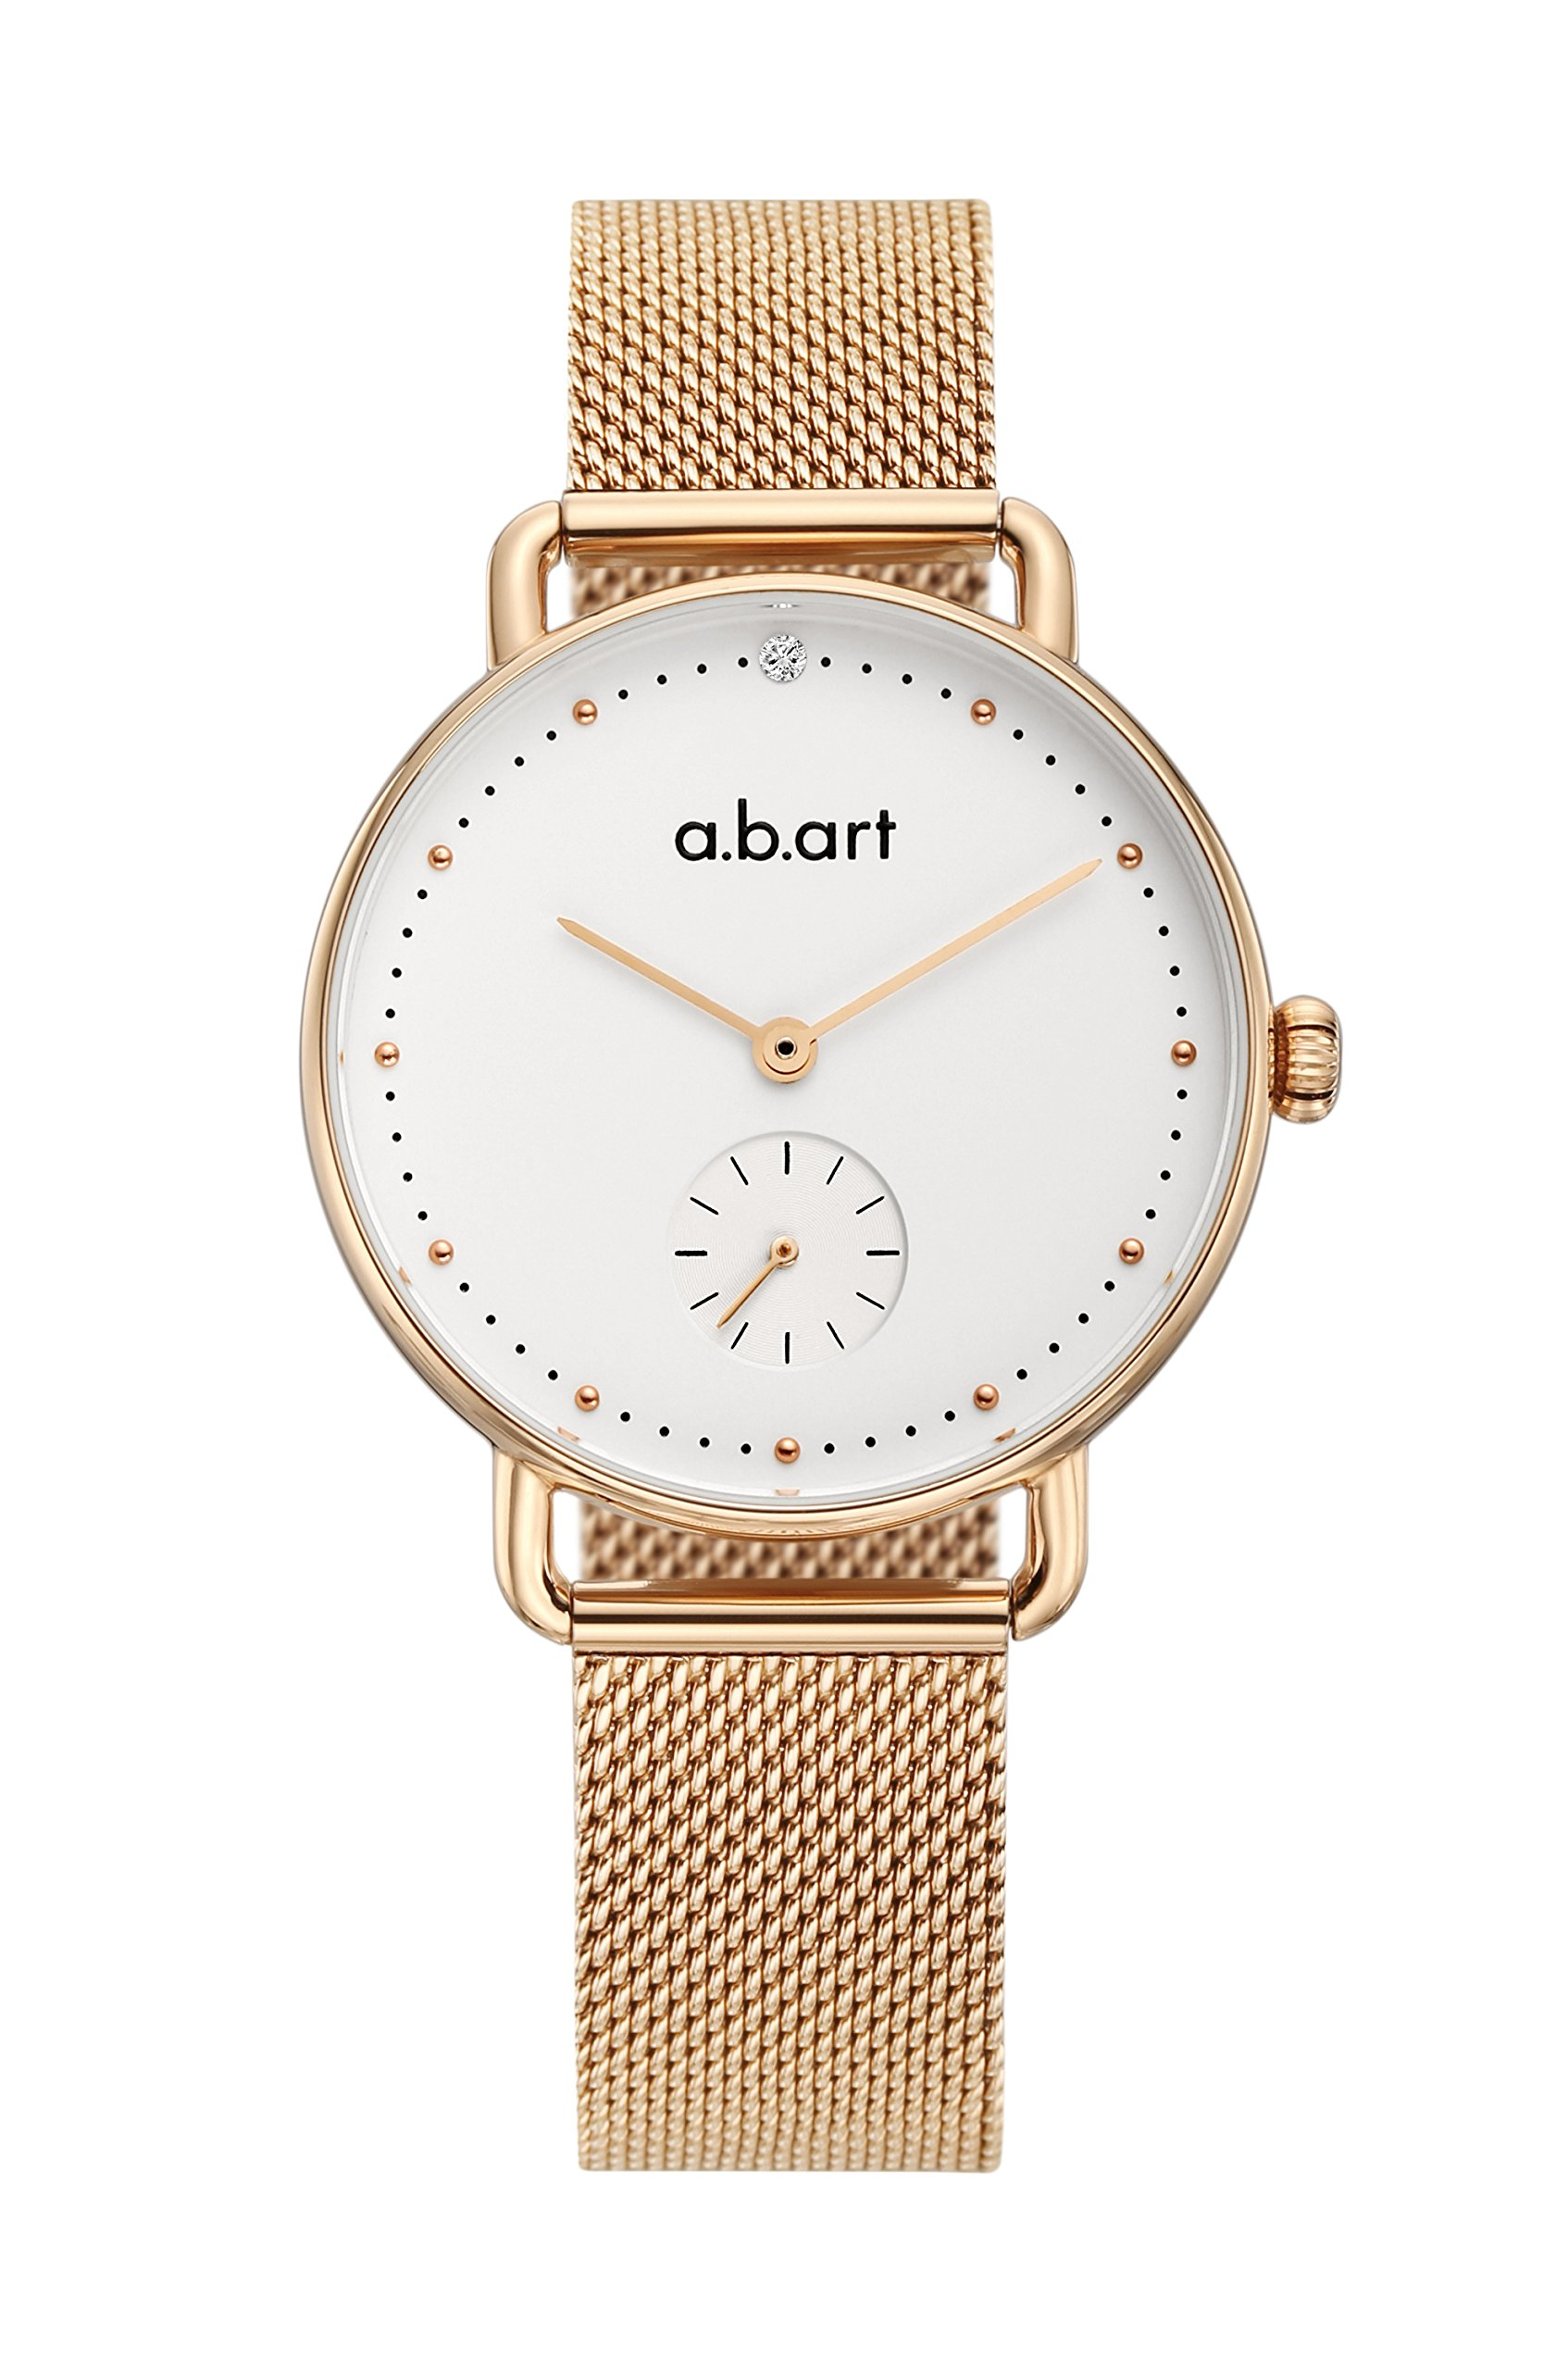 abart Her Gift FR31-000-7S Sapphire Crystal Dotted Dial Ladies Watch Timepiece Rose Gold Mesh Band Watch (rose gold white)